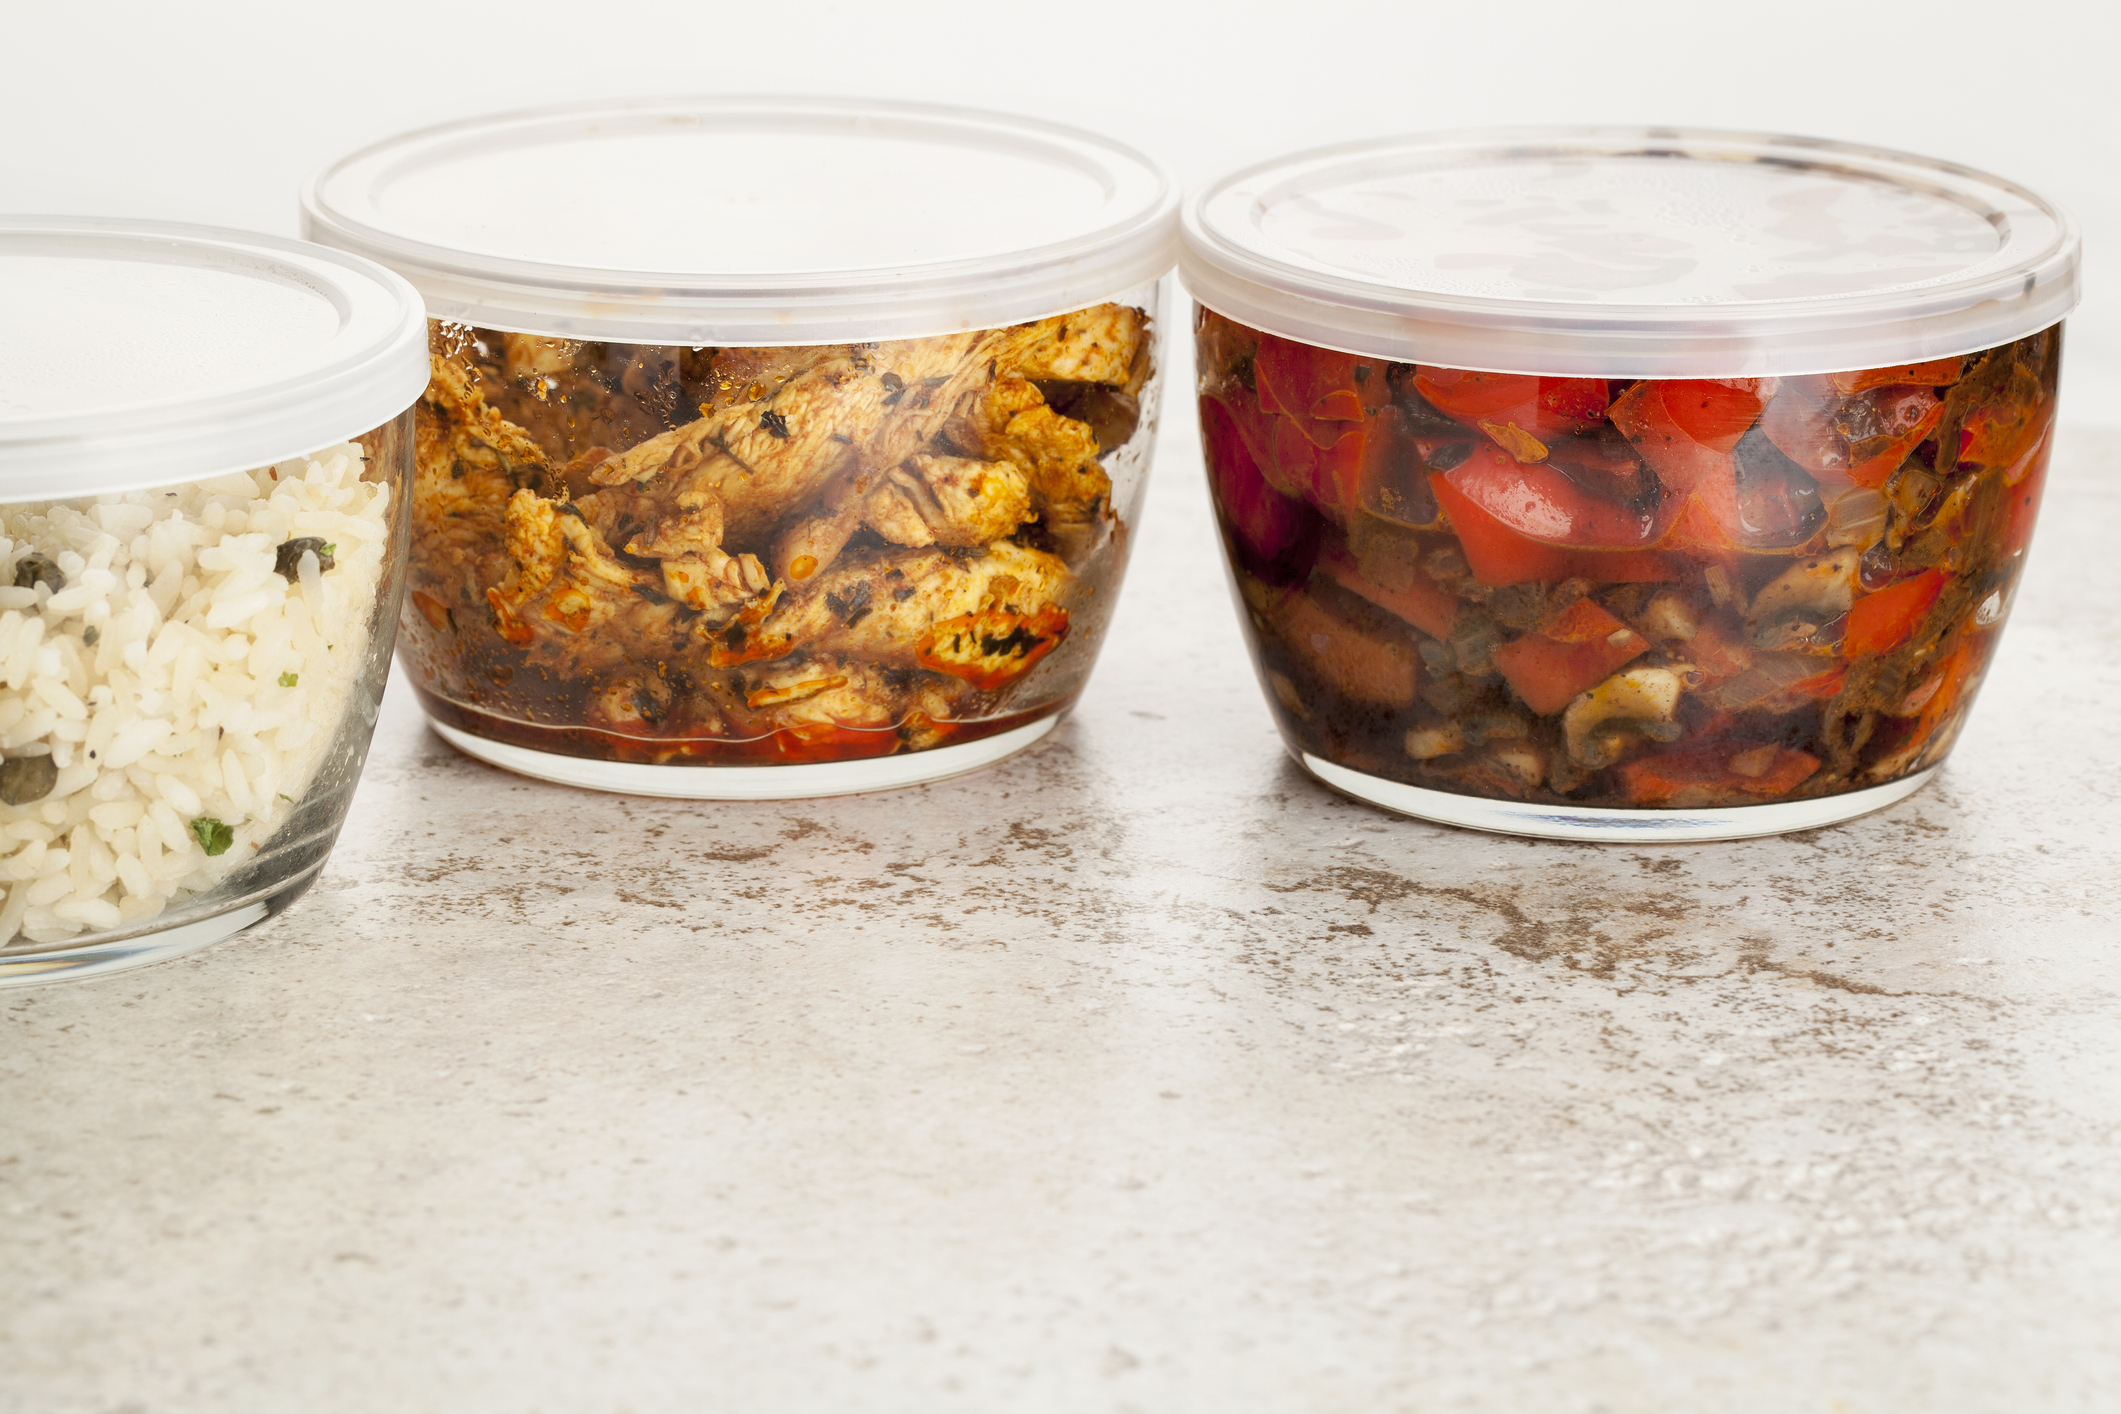 Pack leftovers into microwave-safe storage containers and refrigerate to take to work for lunch the next day. Photo: Getty Images